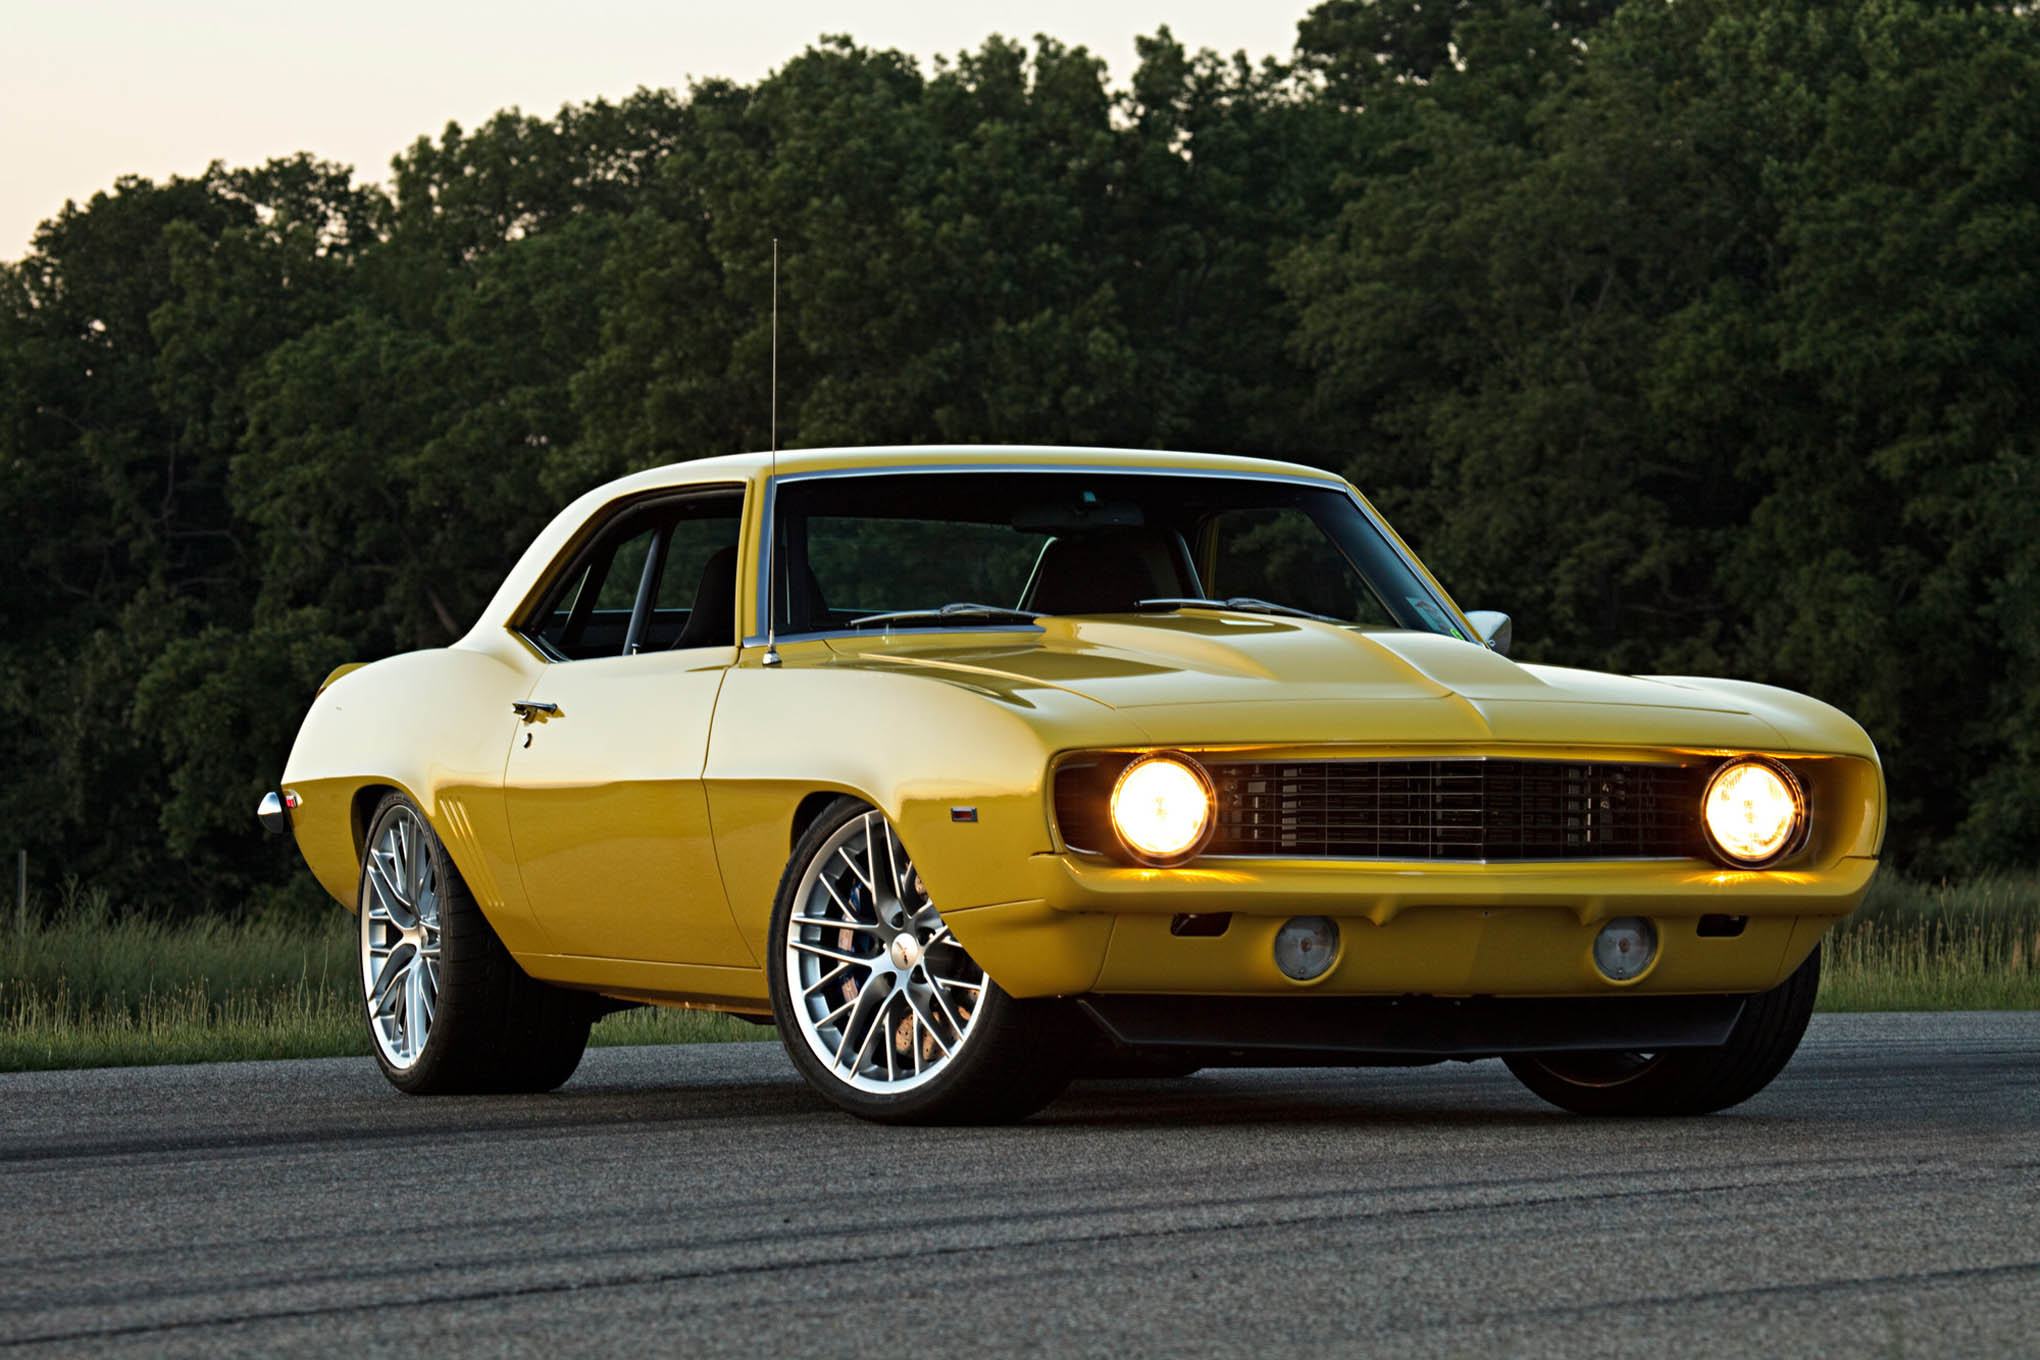 The Jackass Camaro was built by Mark for his friend, Charley Lillard, in 2009, but Mark bought it after a few years and rebuilt it with all the lessons he'd learned since. Its original build thread and update can both be found on the same thread at Lateral-G.net.